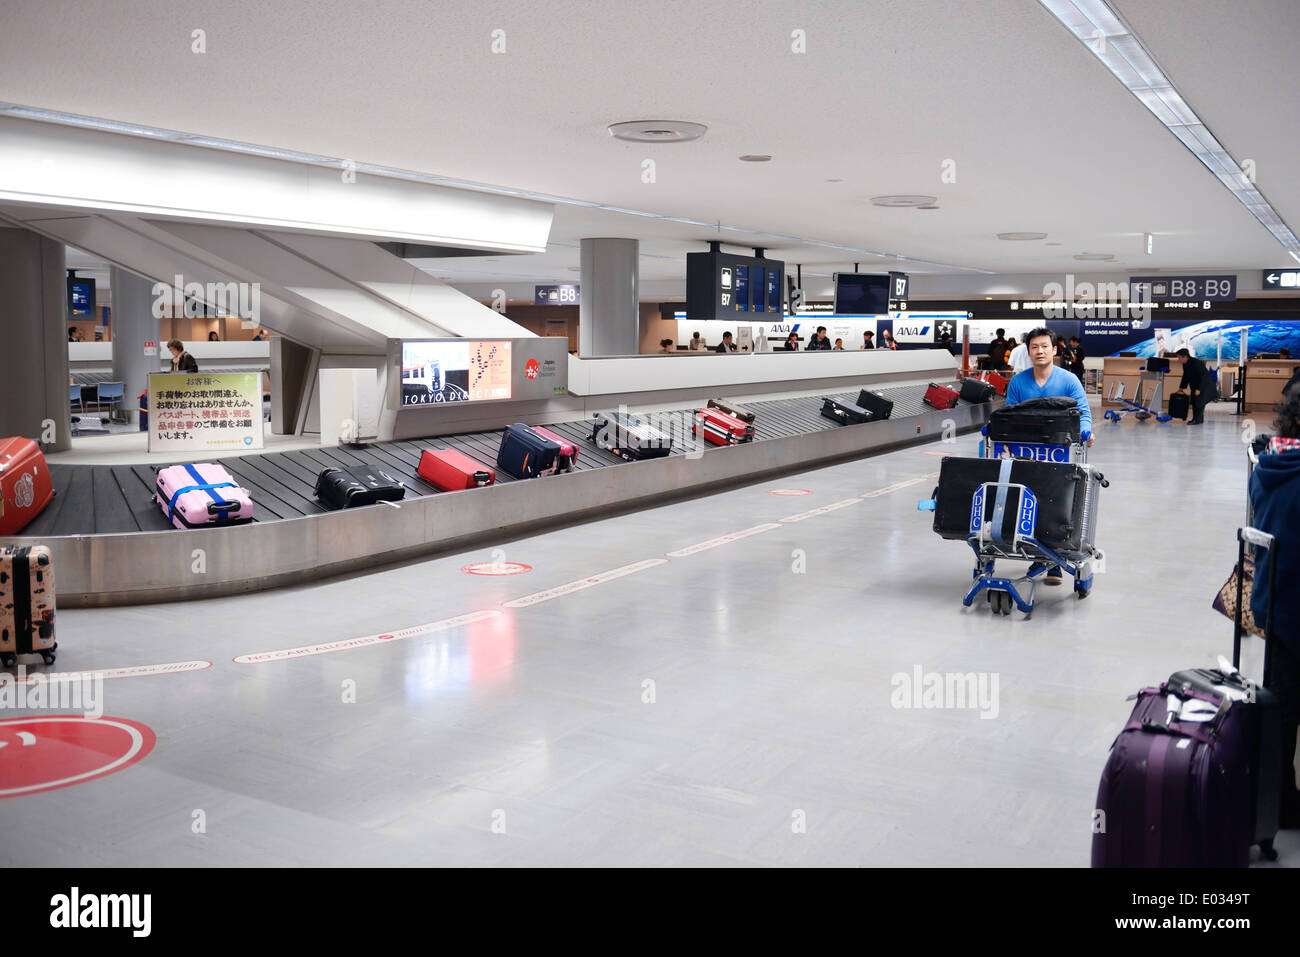 People claiming luggage at Narita International airport baggage conveyor carousel, Japan - Stock Image